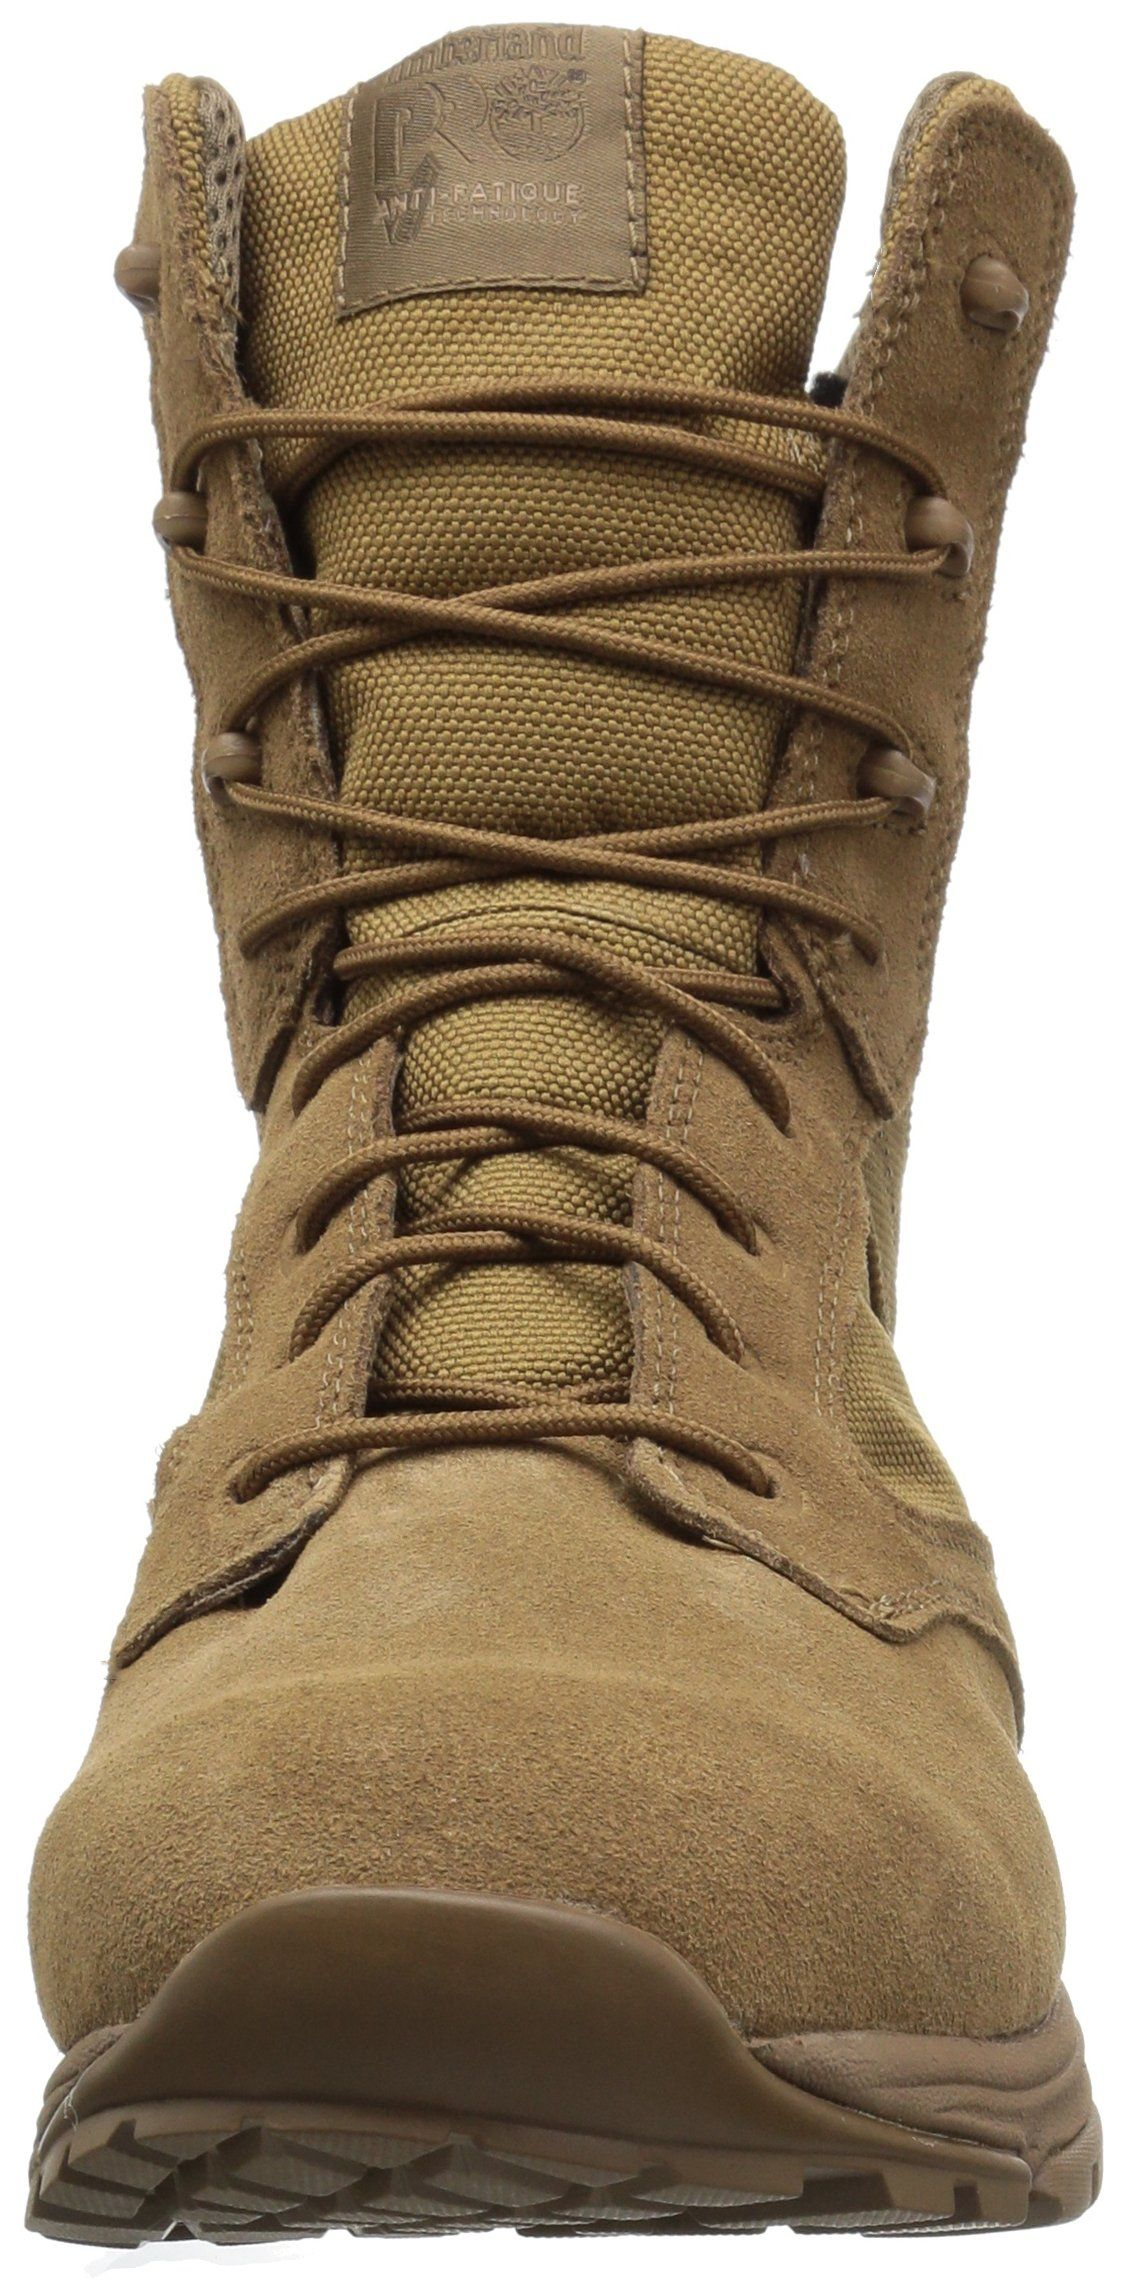 6829383b354e1 Timberland PRO Mens Valor 8 Soft Toe Military and Tactical Boot ...